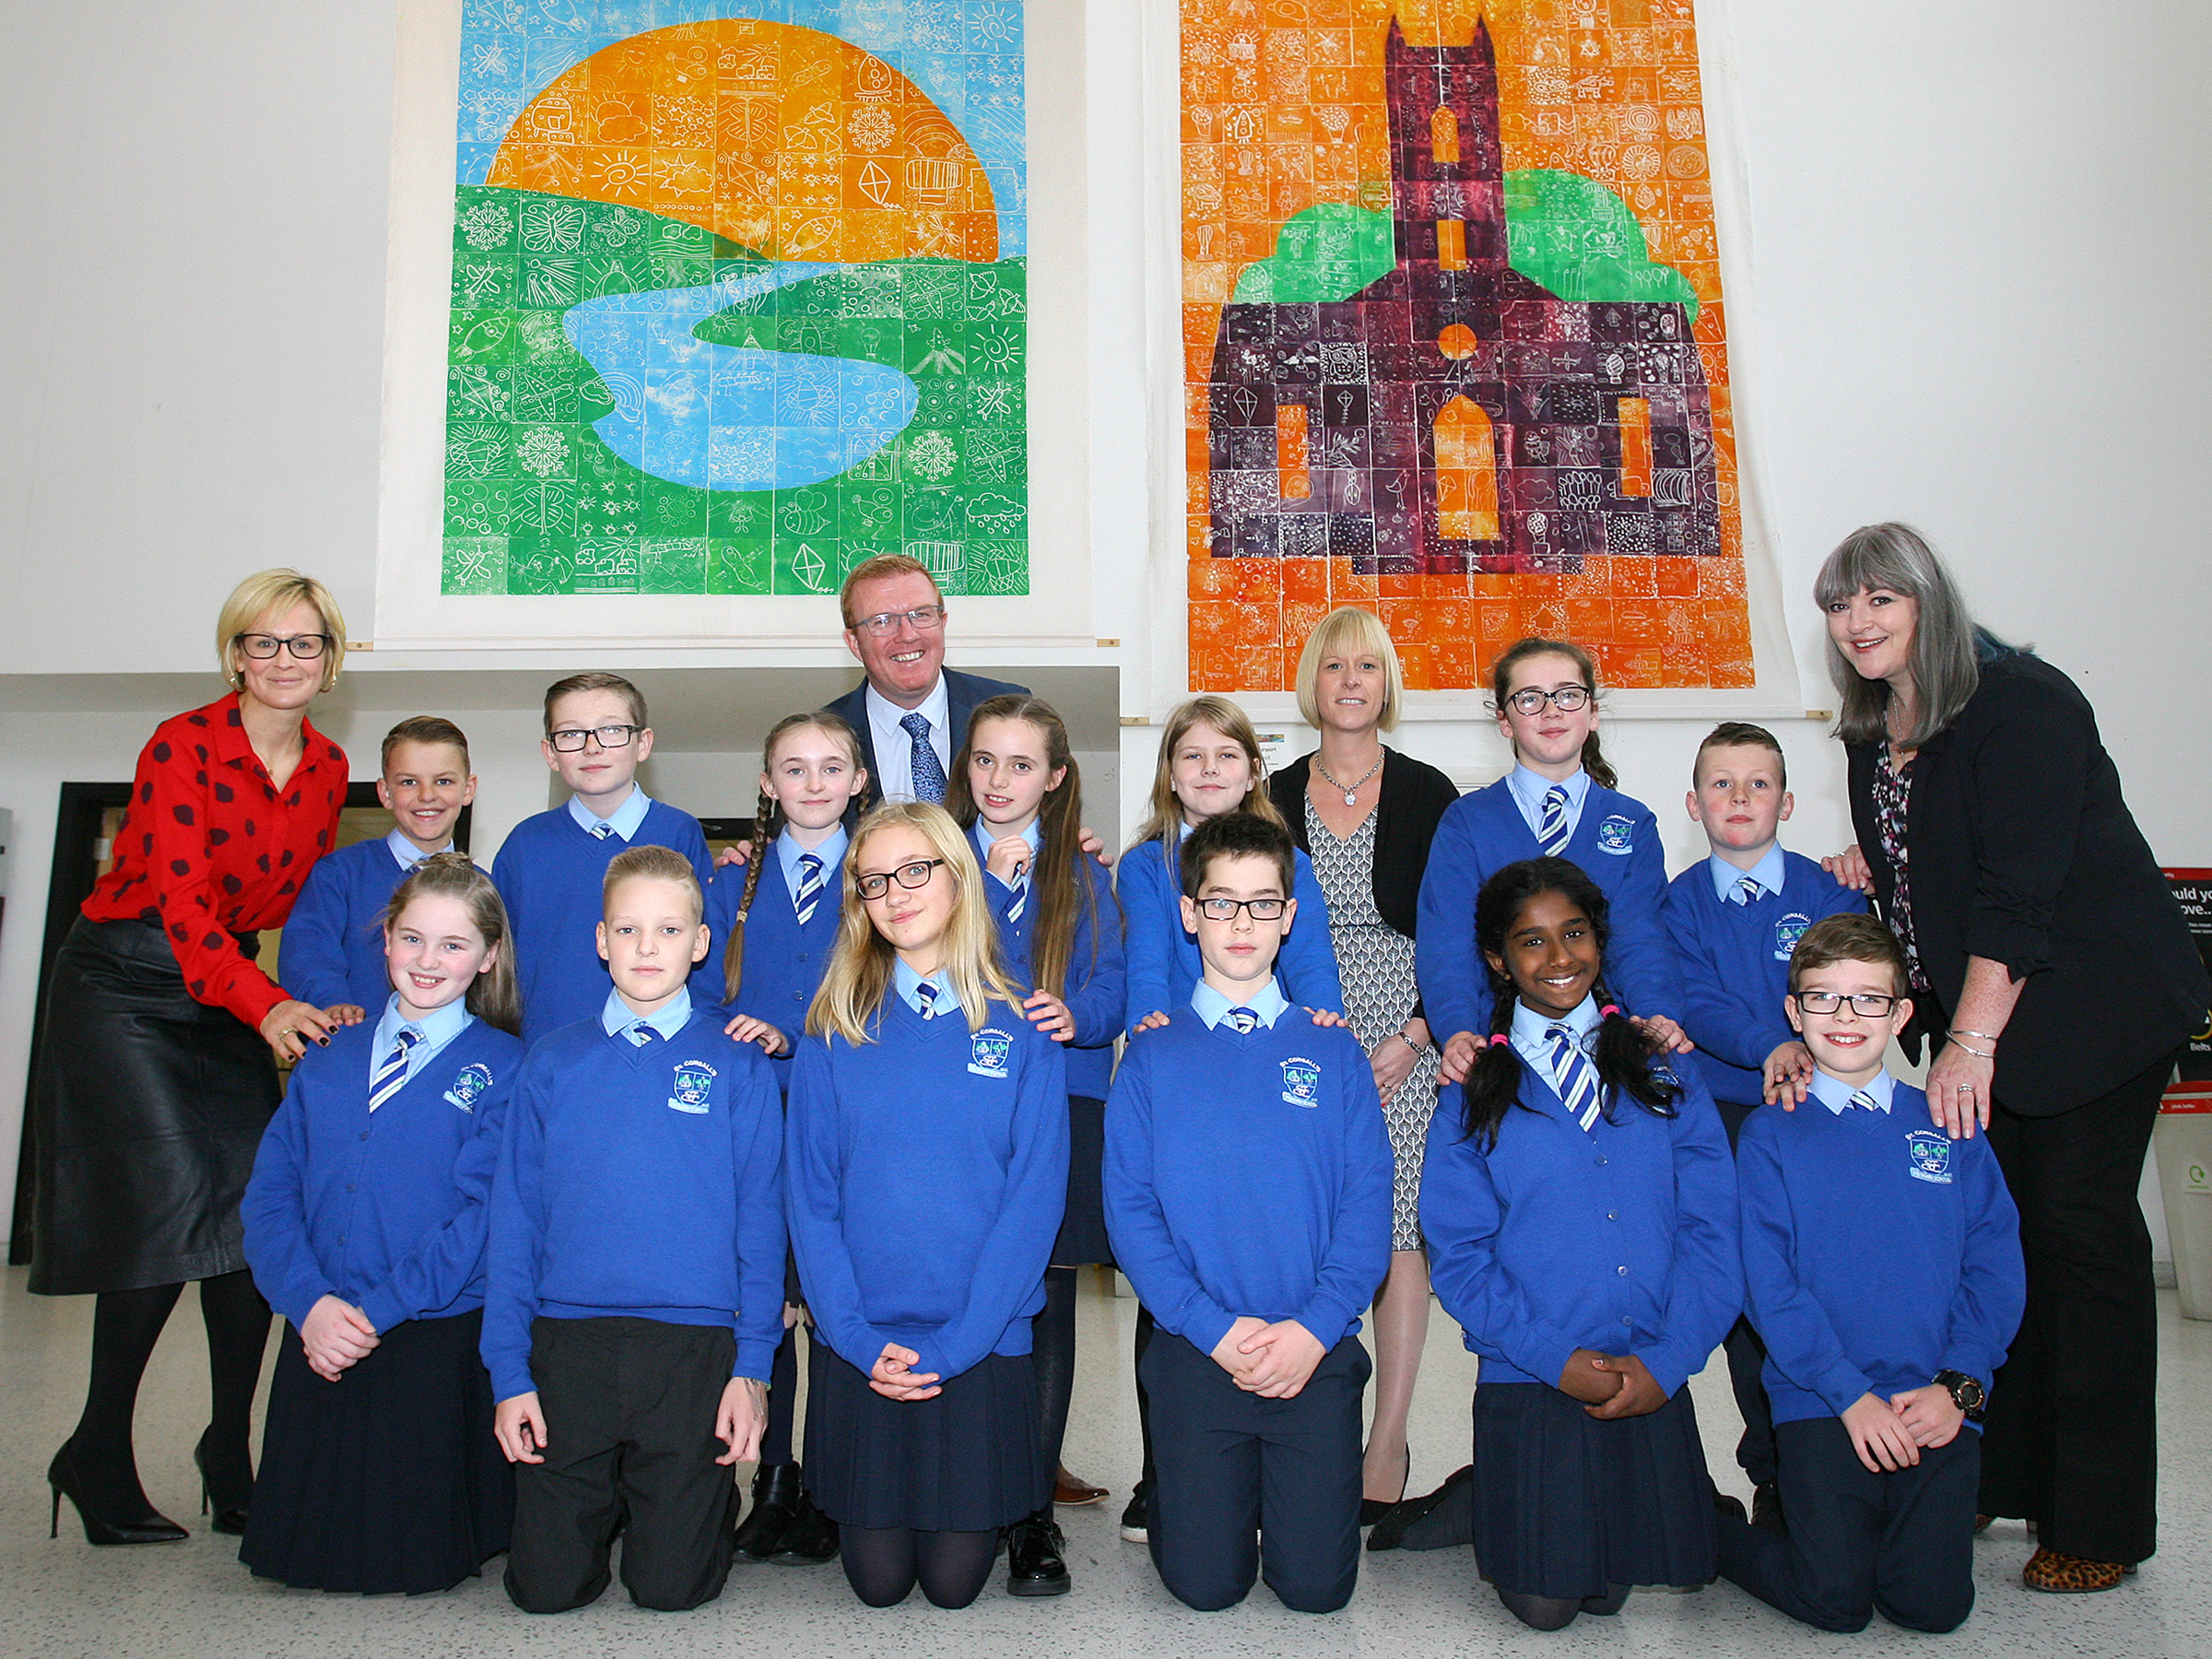 Local primary schools work together to create unique artwork for display in Belfast International Airport